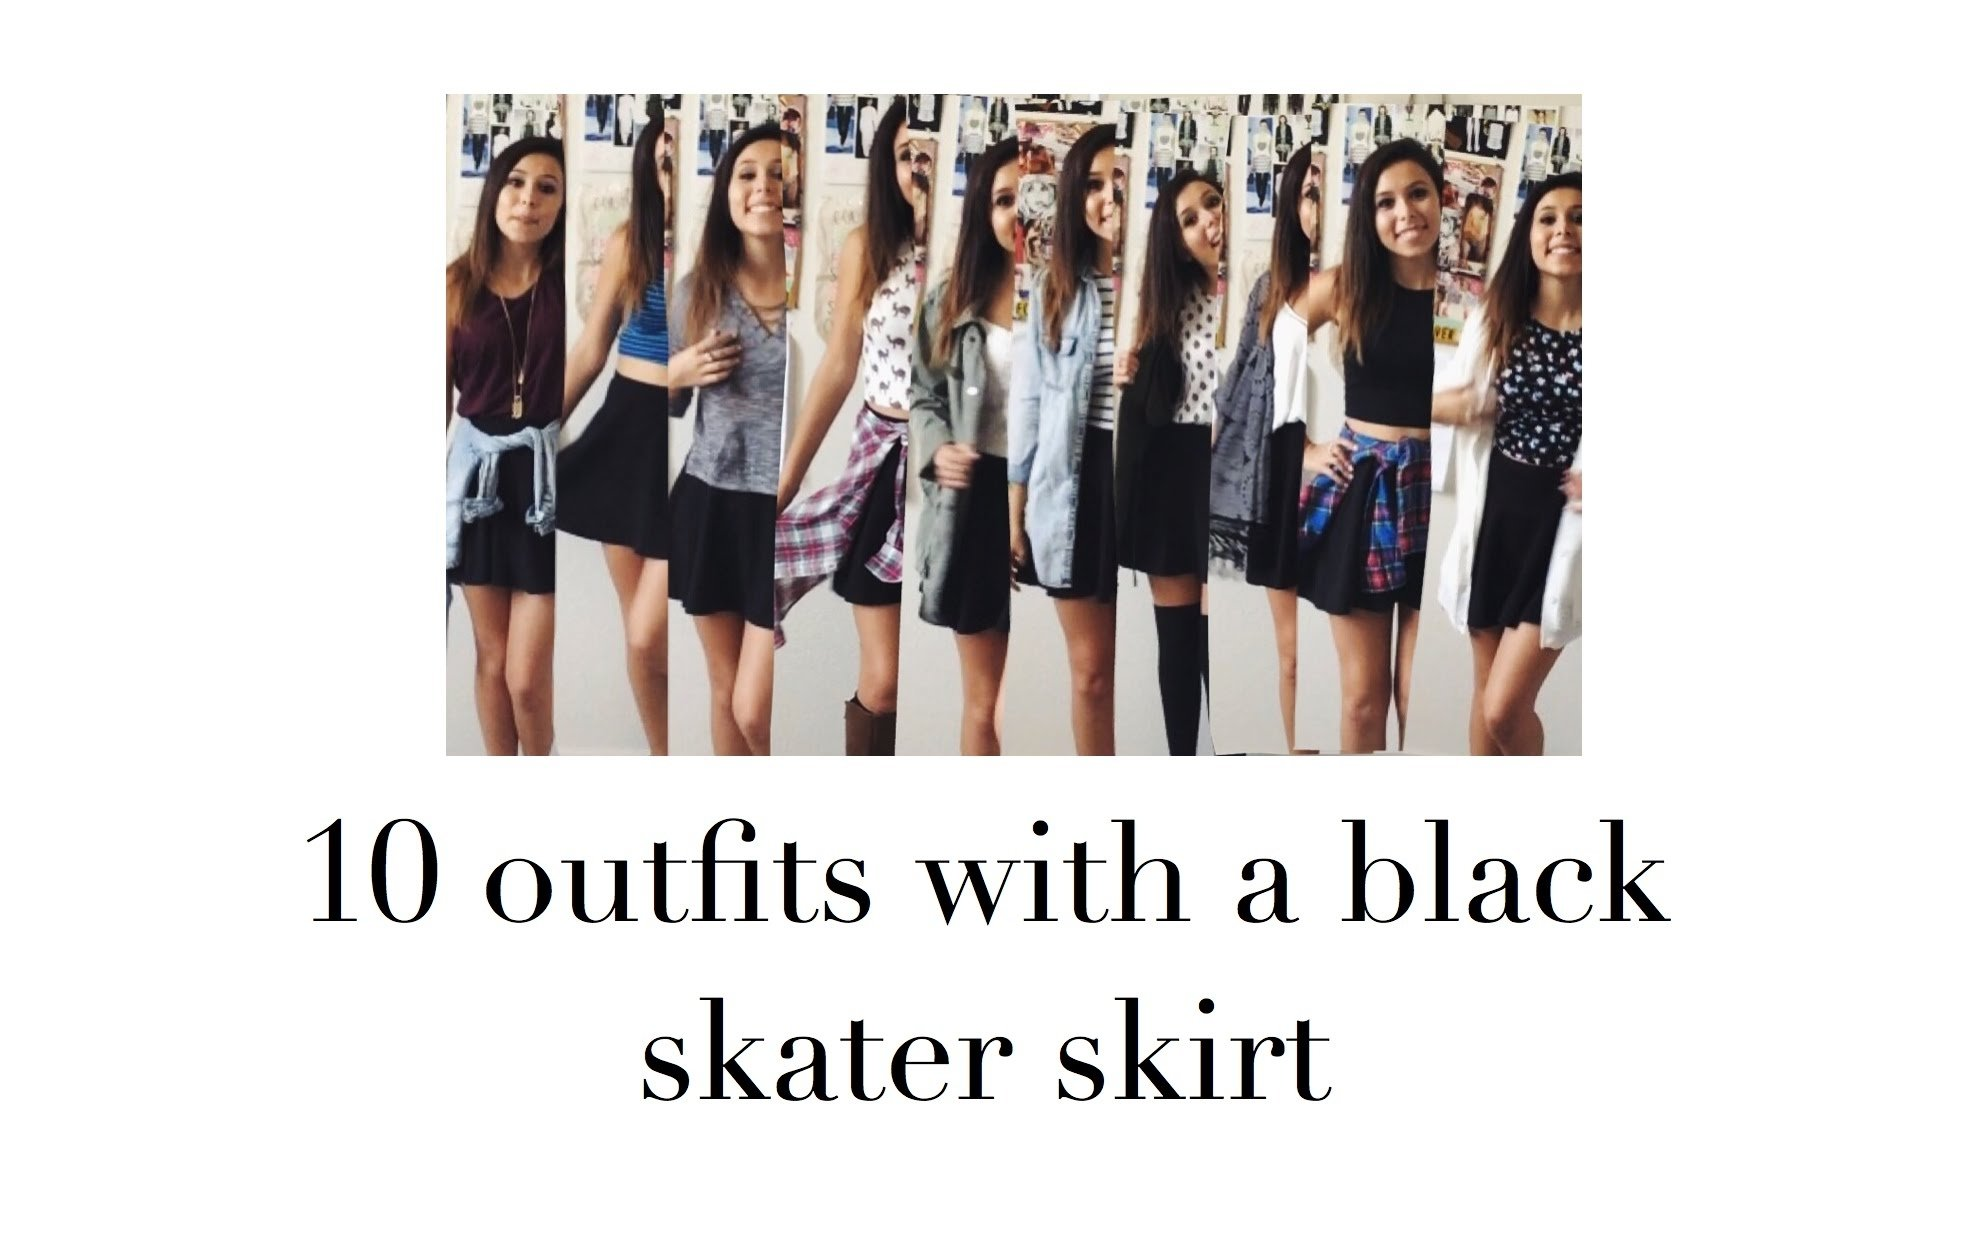 10 Wonderful Black Skater Skirt Outfit Ideas 10 outfits with a black skater skirt youtube 2020